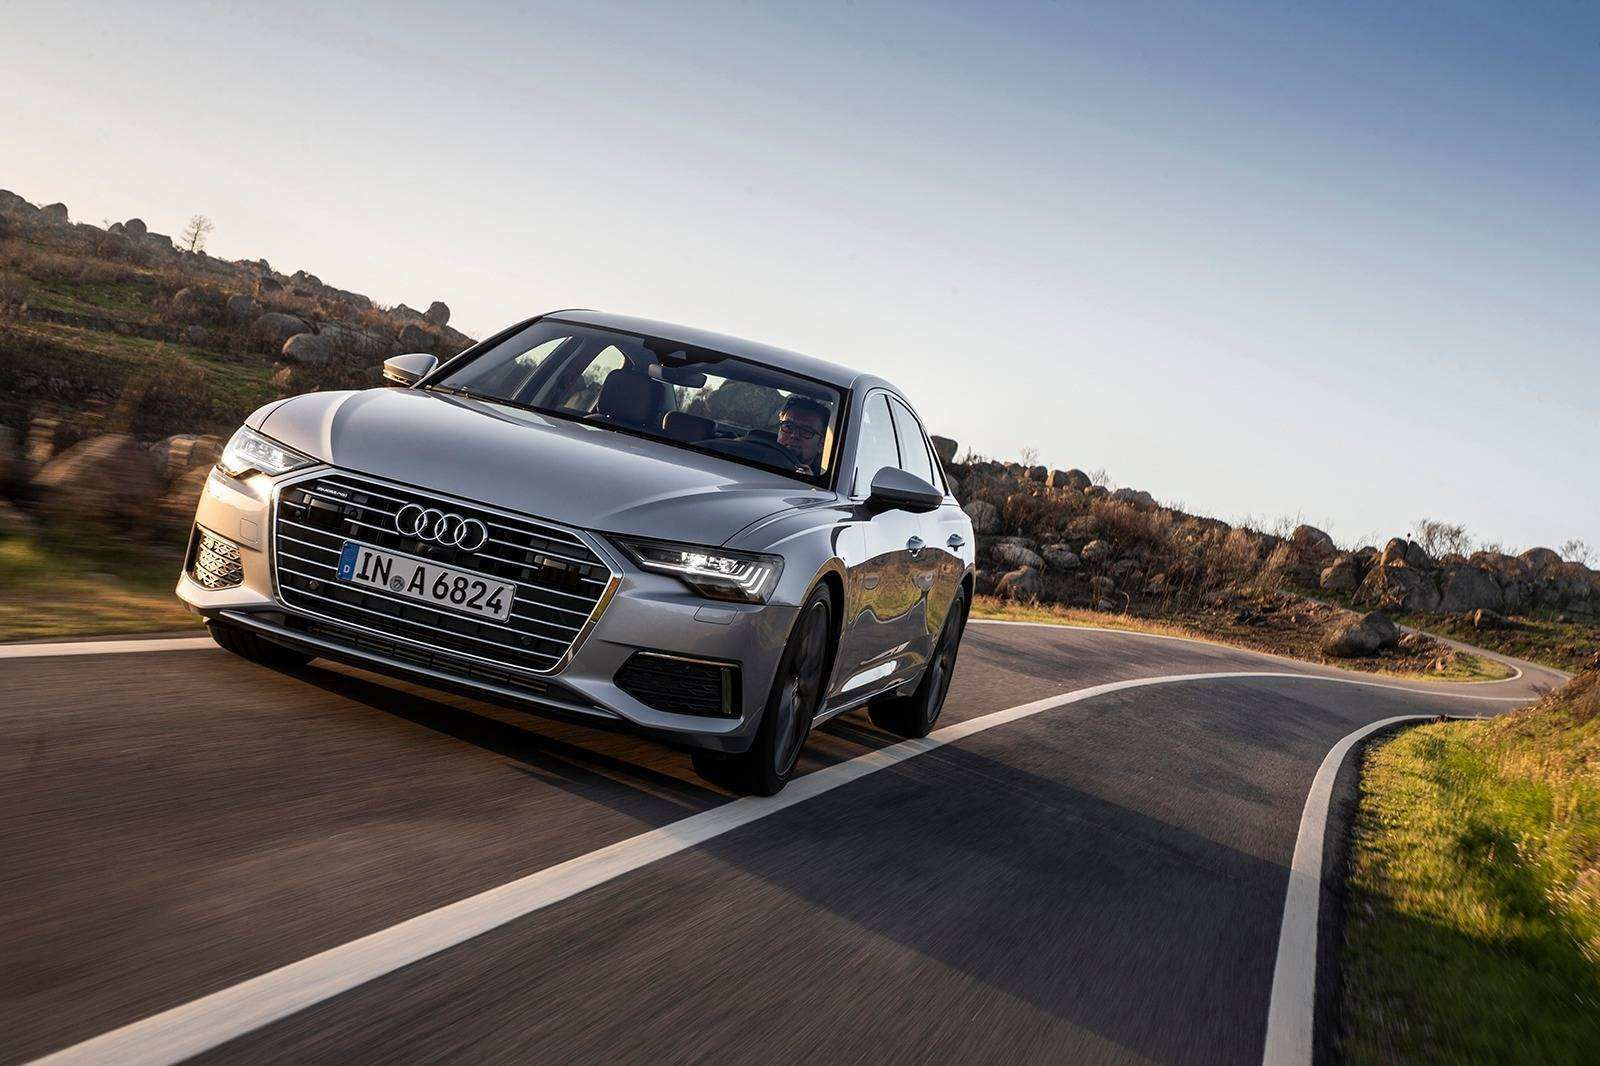 53 Gallery of New 2019 Audi Build And Price Redesign And Price History by New 2019 Audi Build And Price Redesign And Price